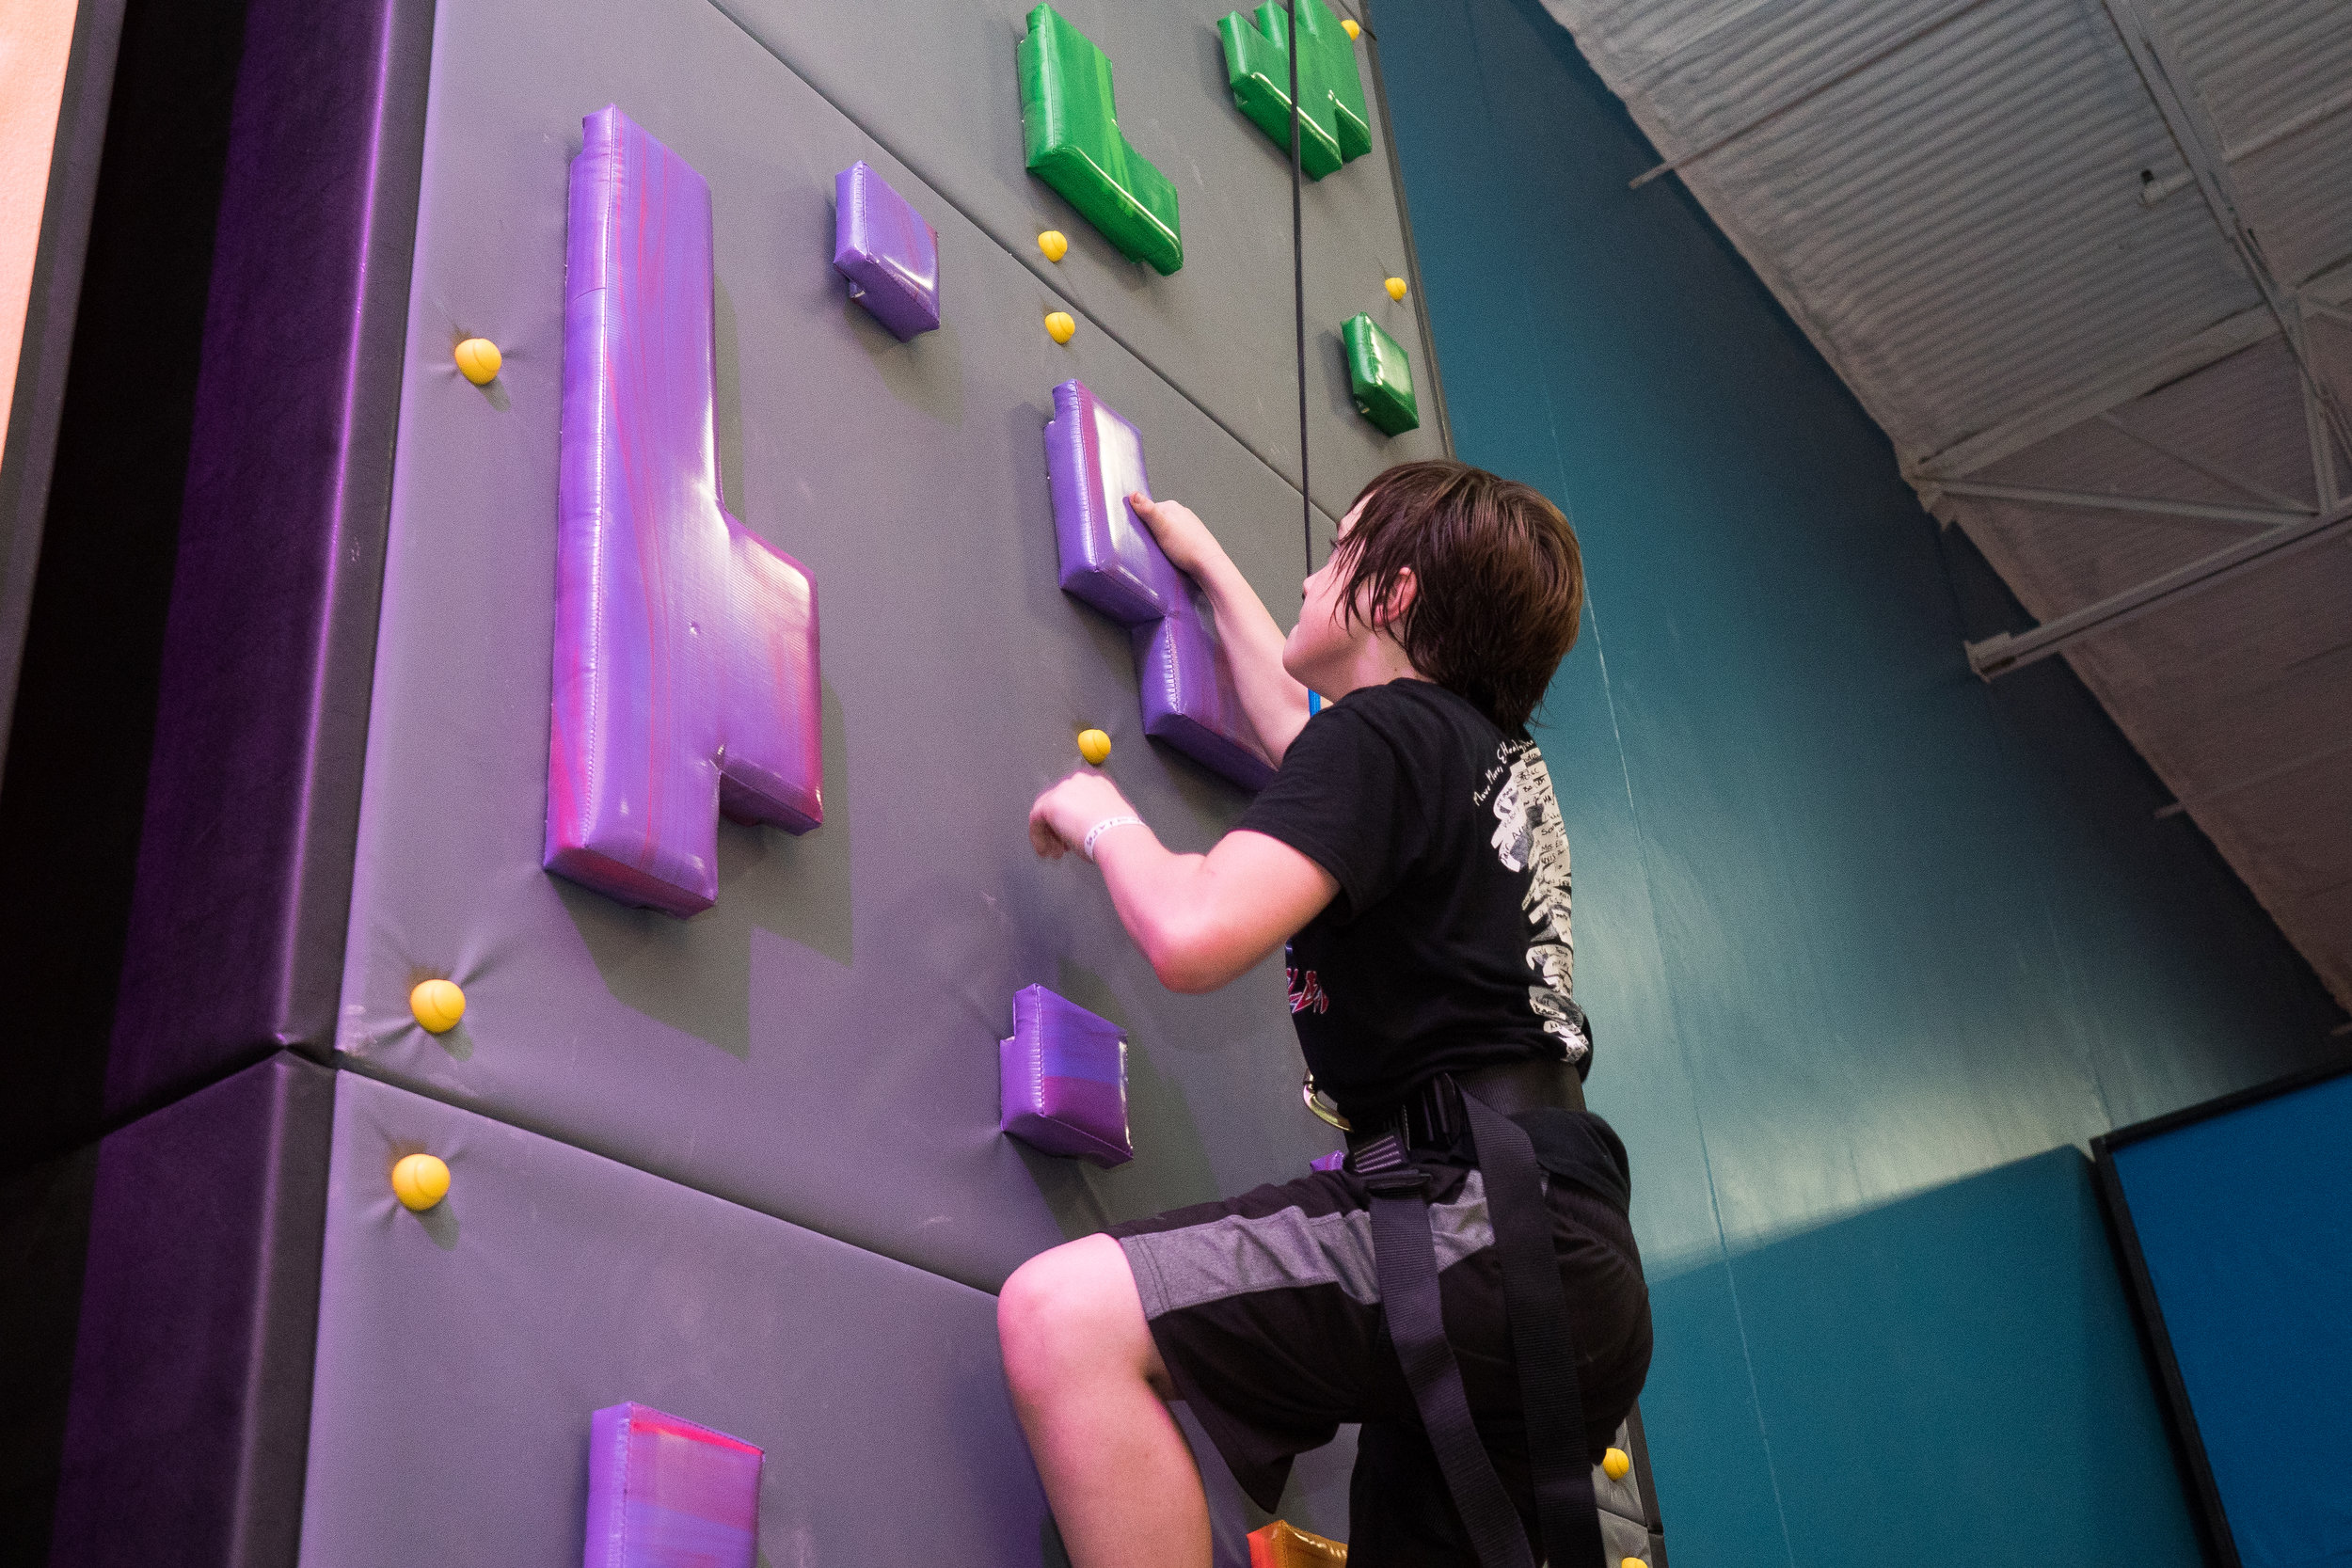 A young boy scales the rock climbing wall.